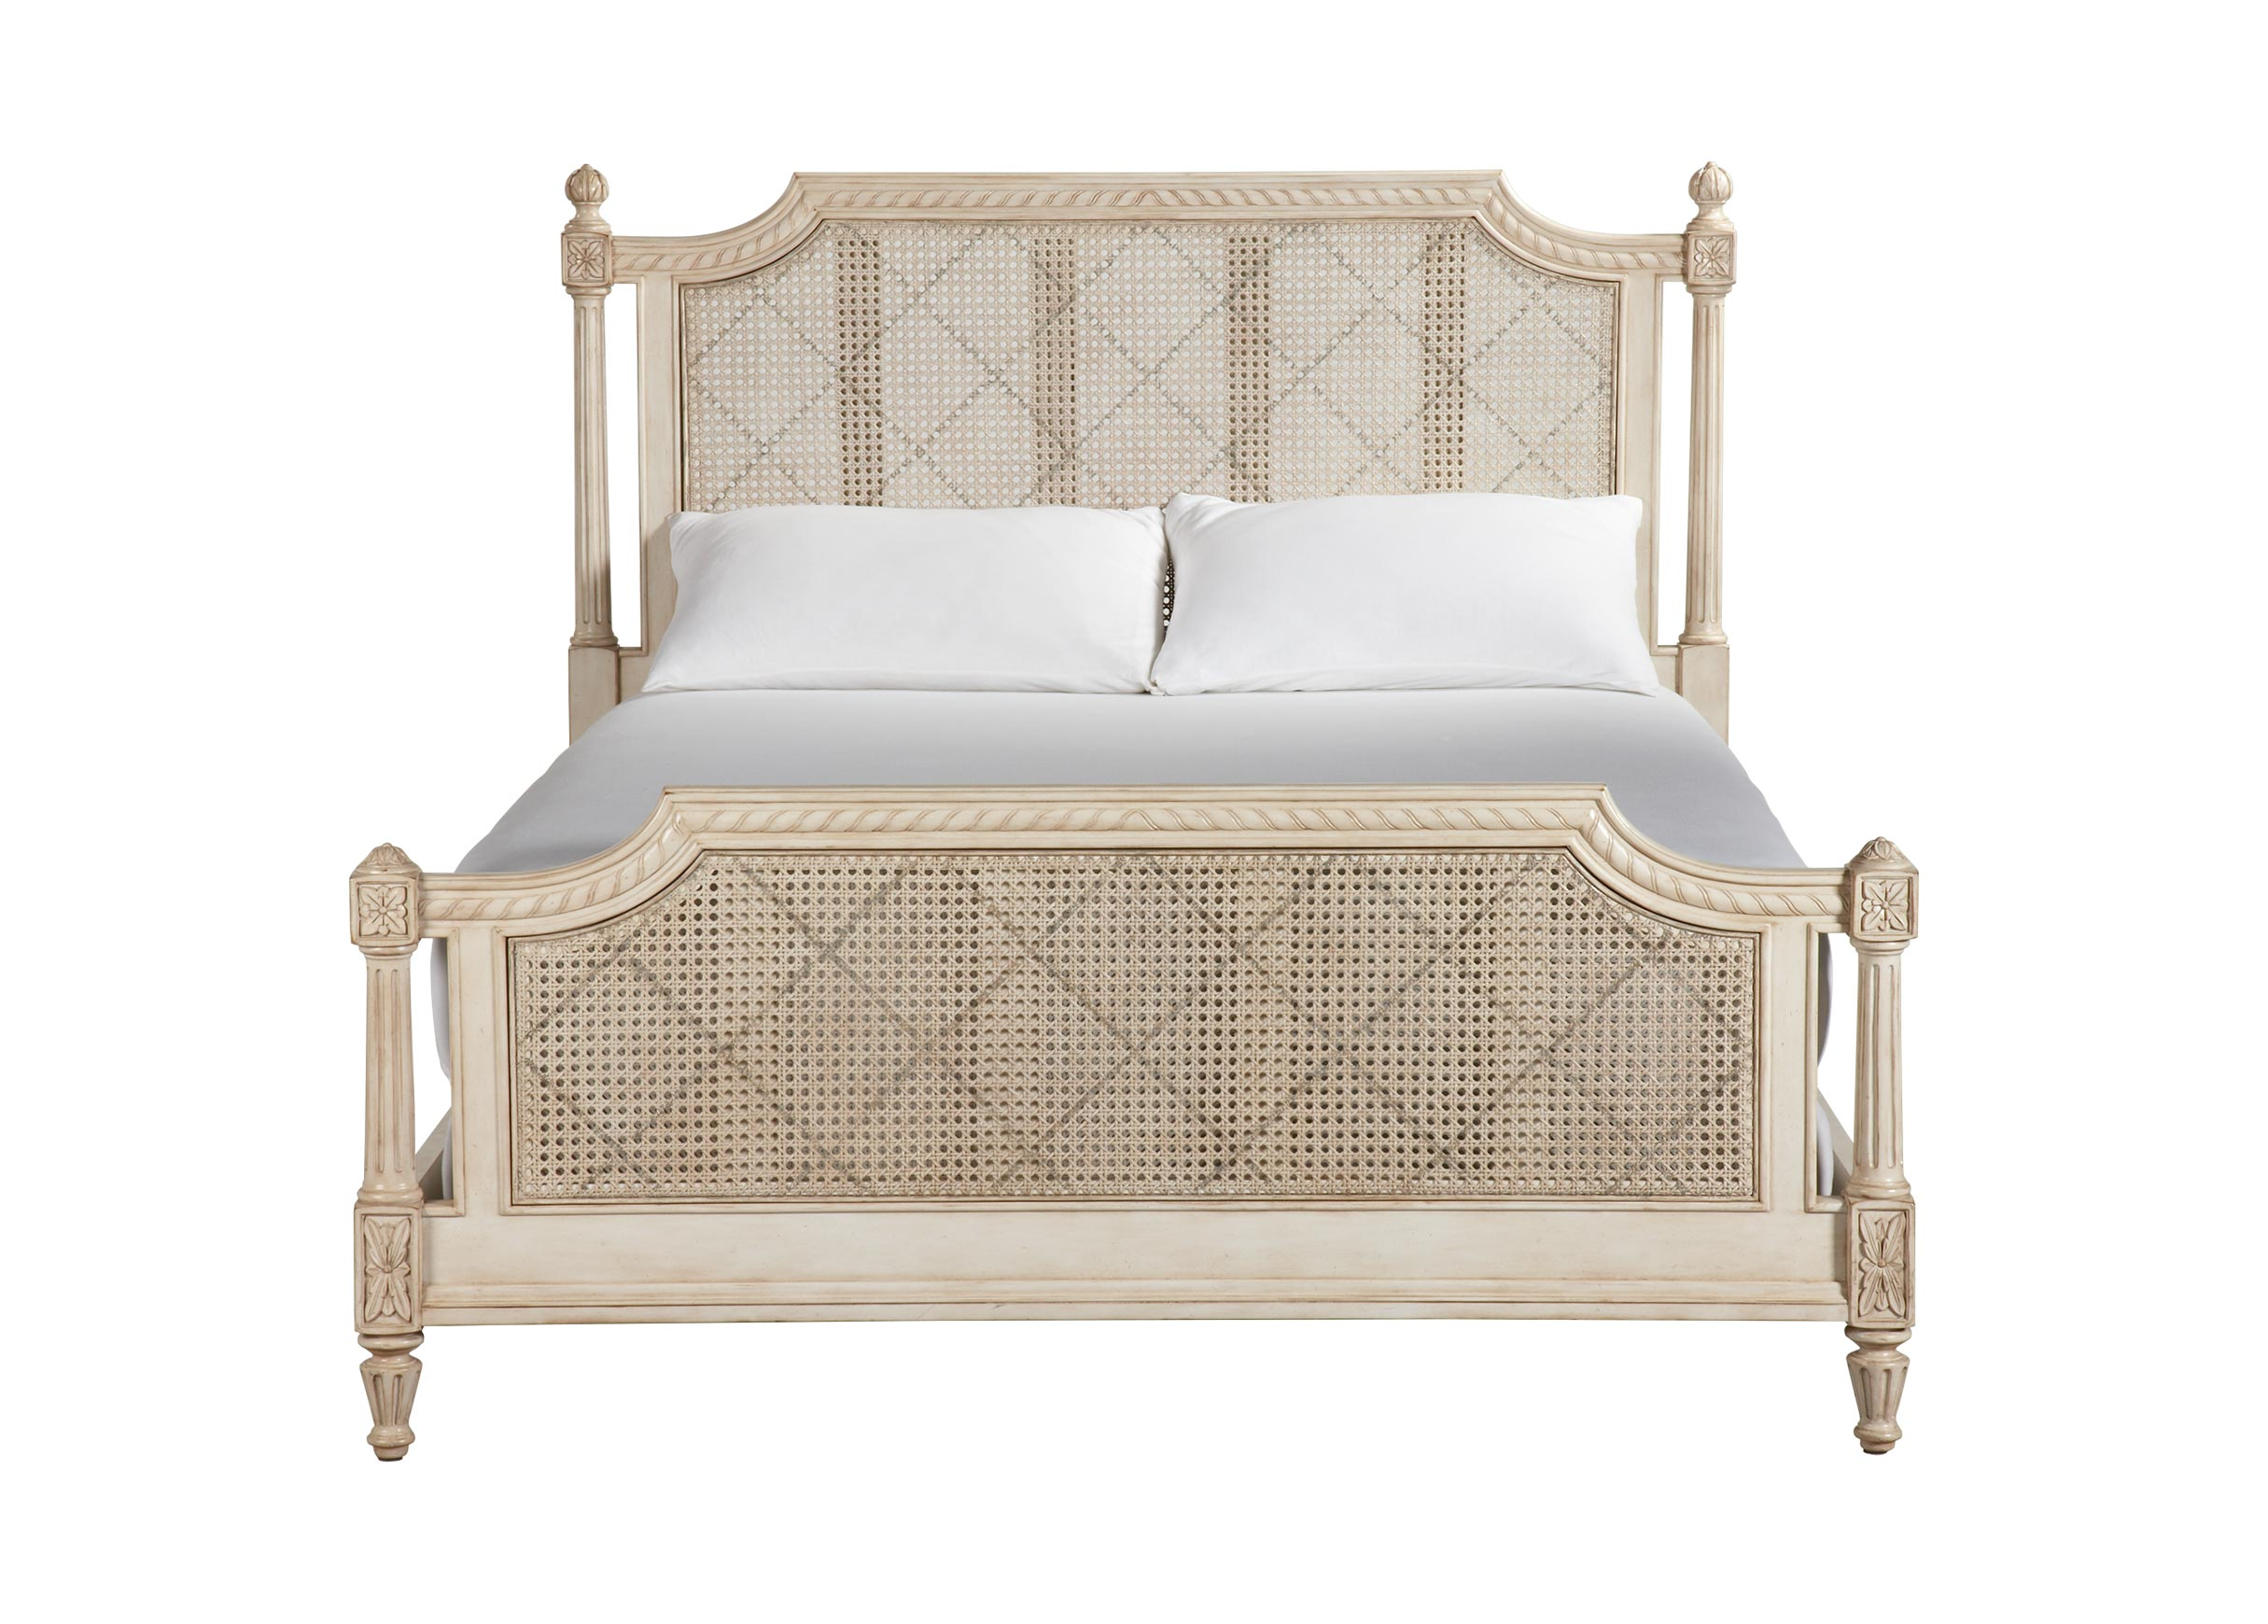 Ethan Allen Country French King Bed